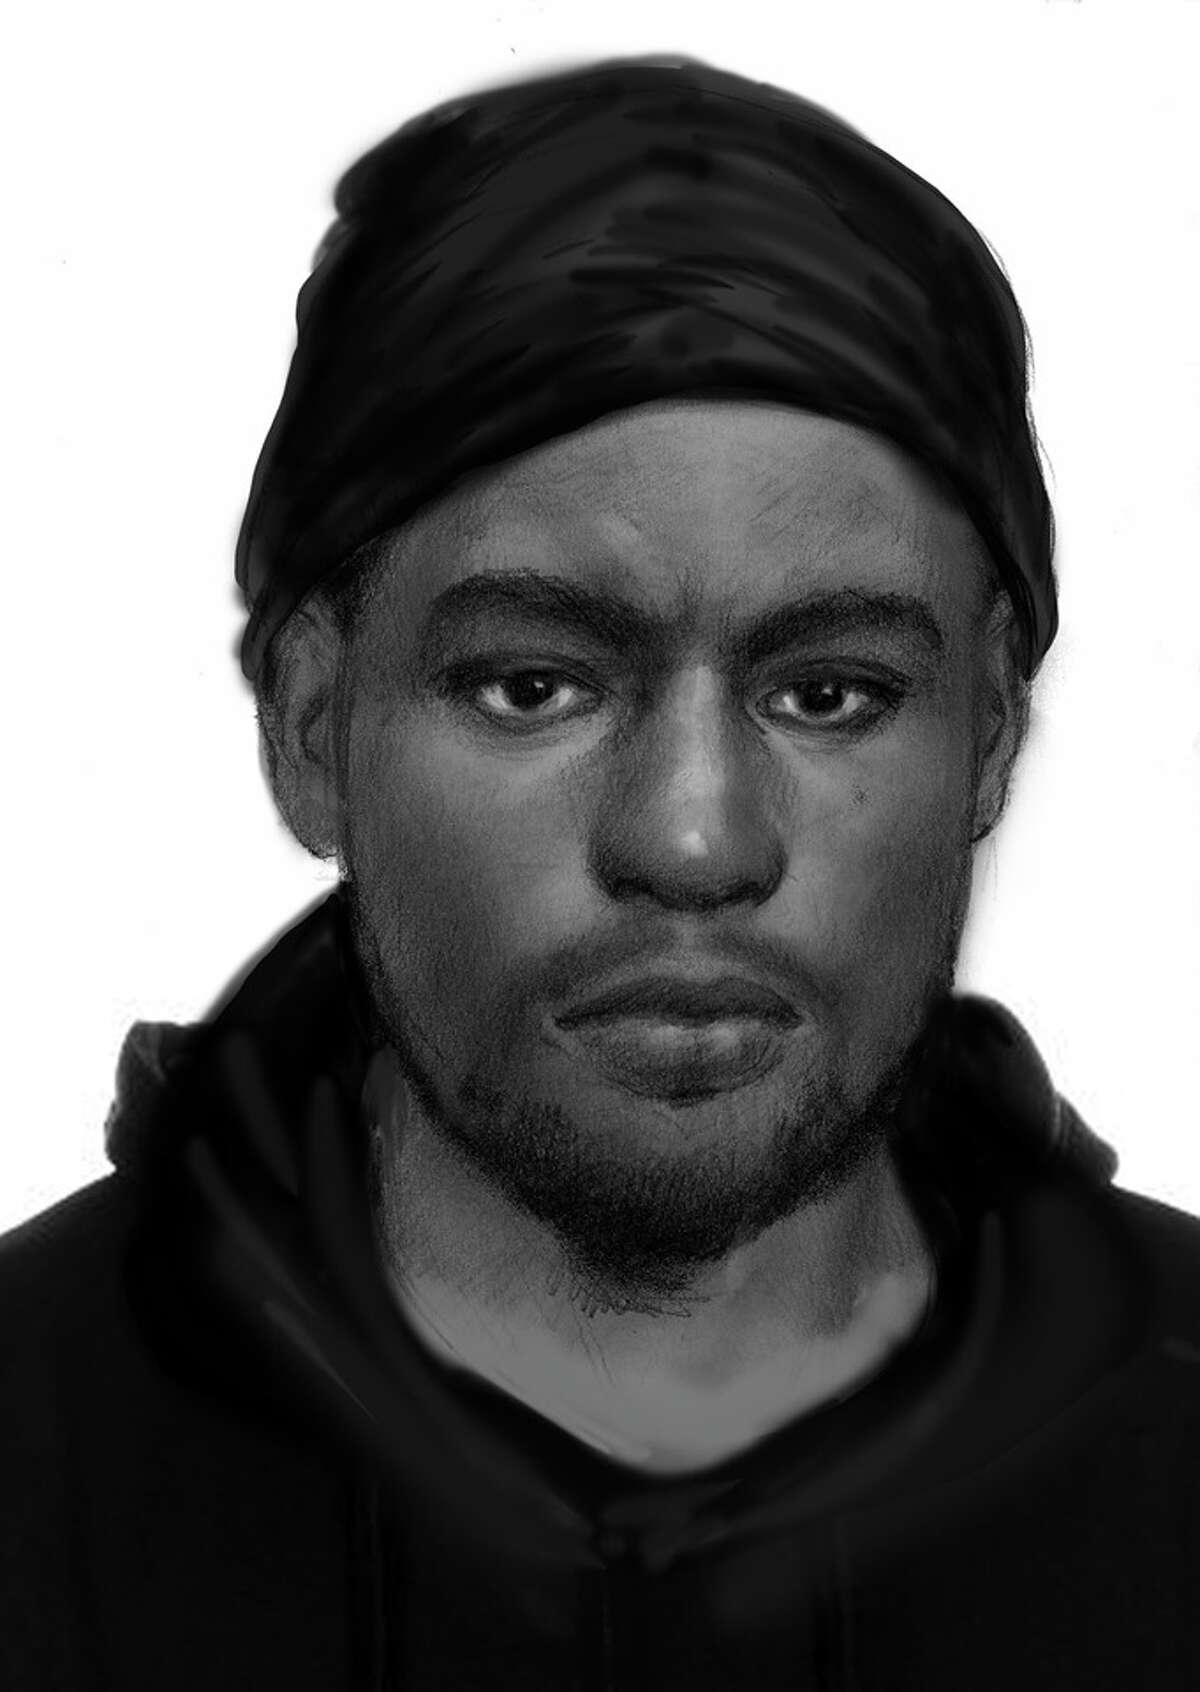 This sketch was released Friday, May 3, 2019, as San Marcos police sought a suspect tied to three sexual assaults. One of the victims saw the man's face and was able to give a description. Police described him as a black male, approximately 6'2